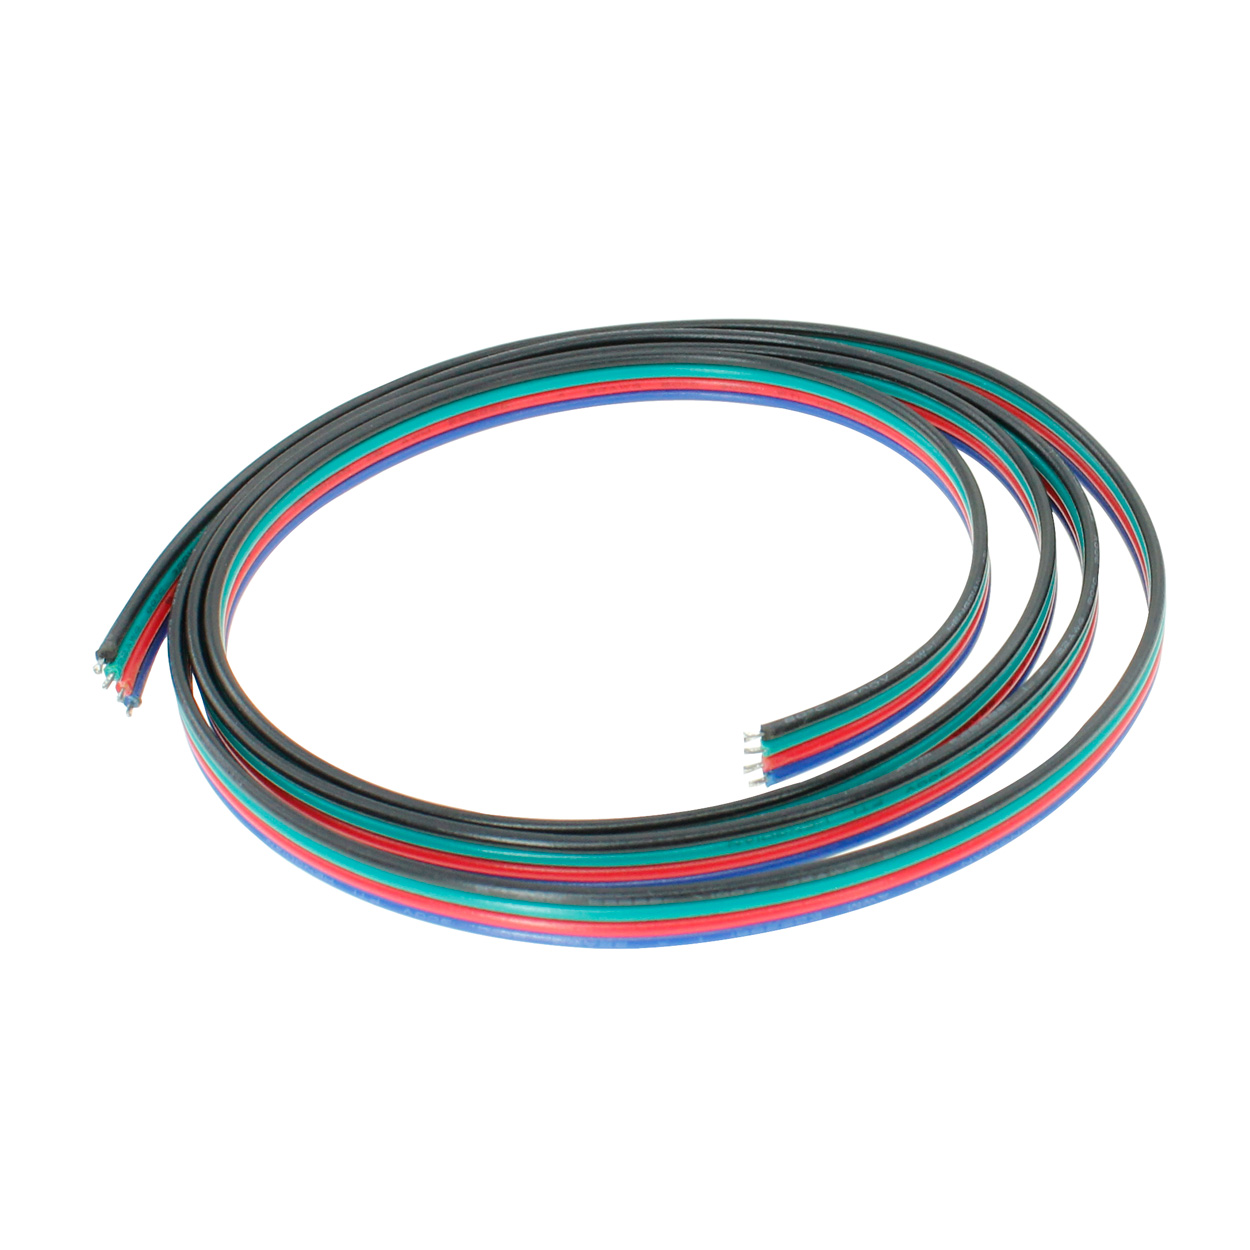 small resolution of 4 wire 18awg power cable for rgb led light strips 20 meter 66ft pi manufacturing